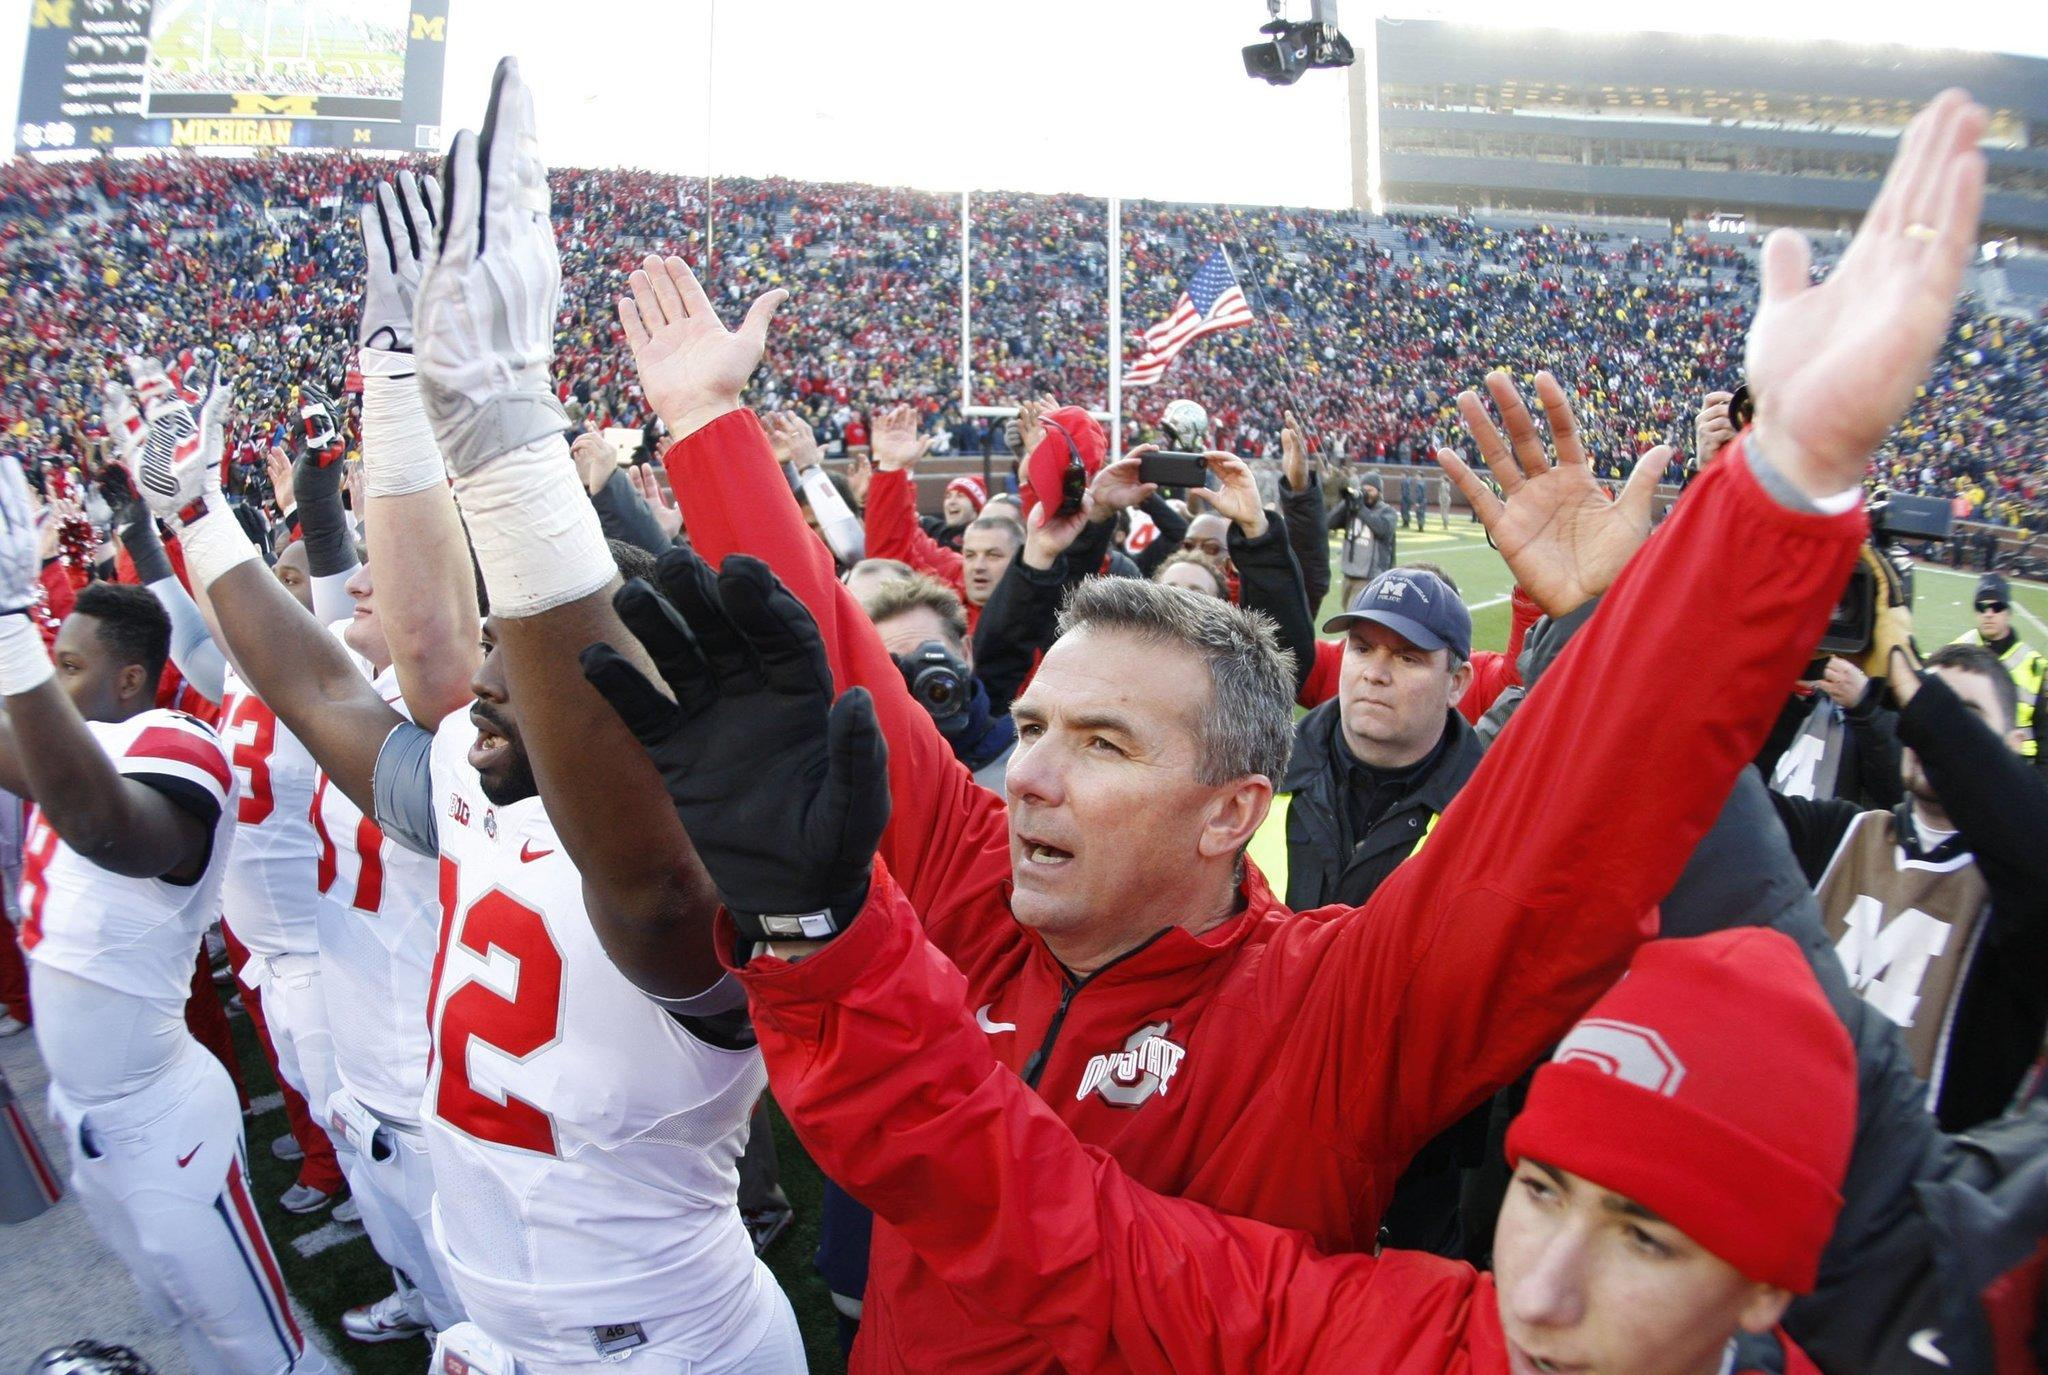 Ohio State coach Urban Meyer joins his team to sing the school's alma mater.